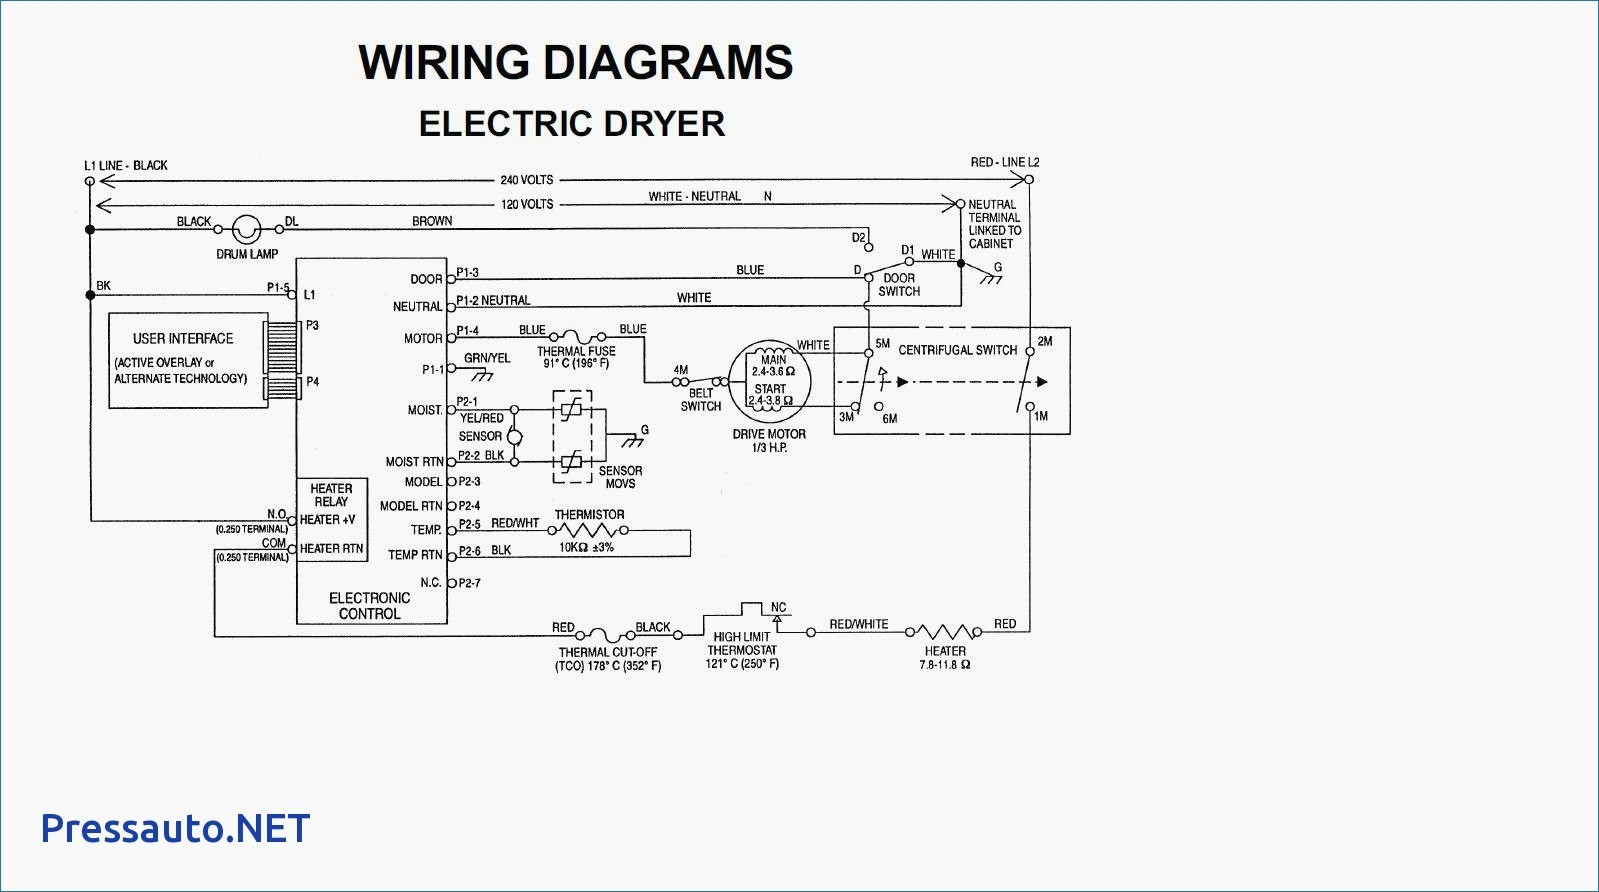 Diagram An Electrical Circuit Popular Maytag Dryer Wiring Diagram Fitfathers Me Beauteous Wire Blurts